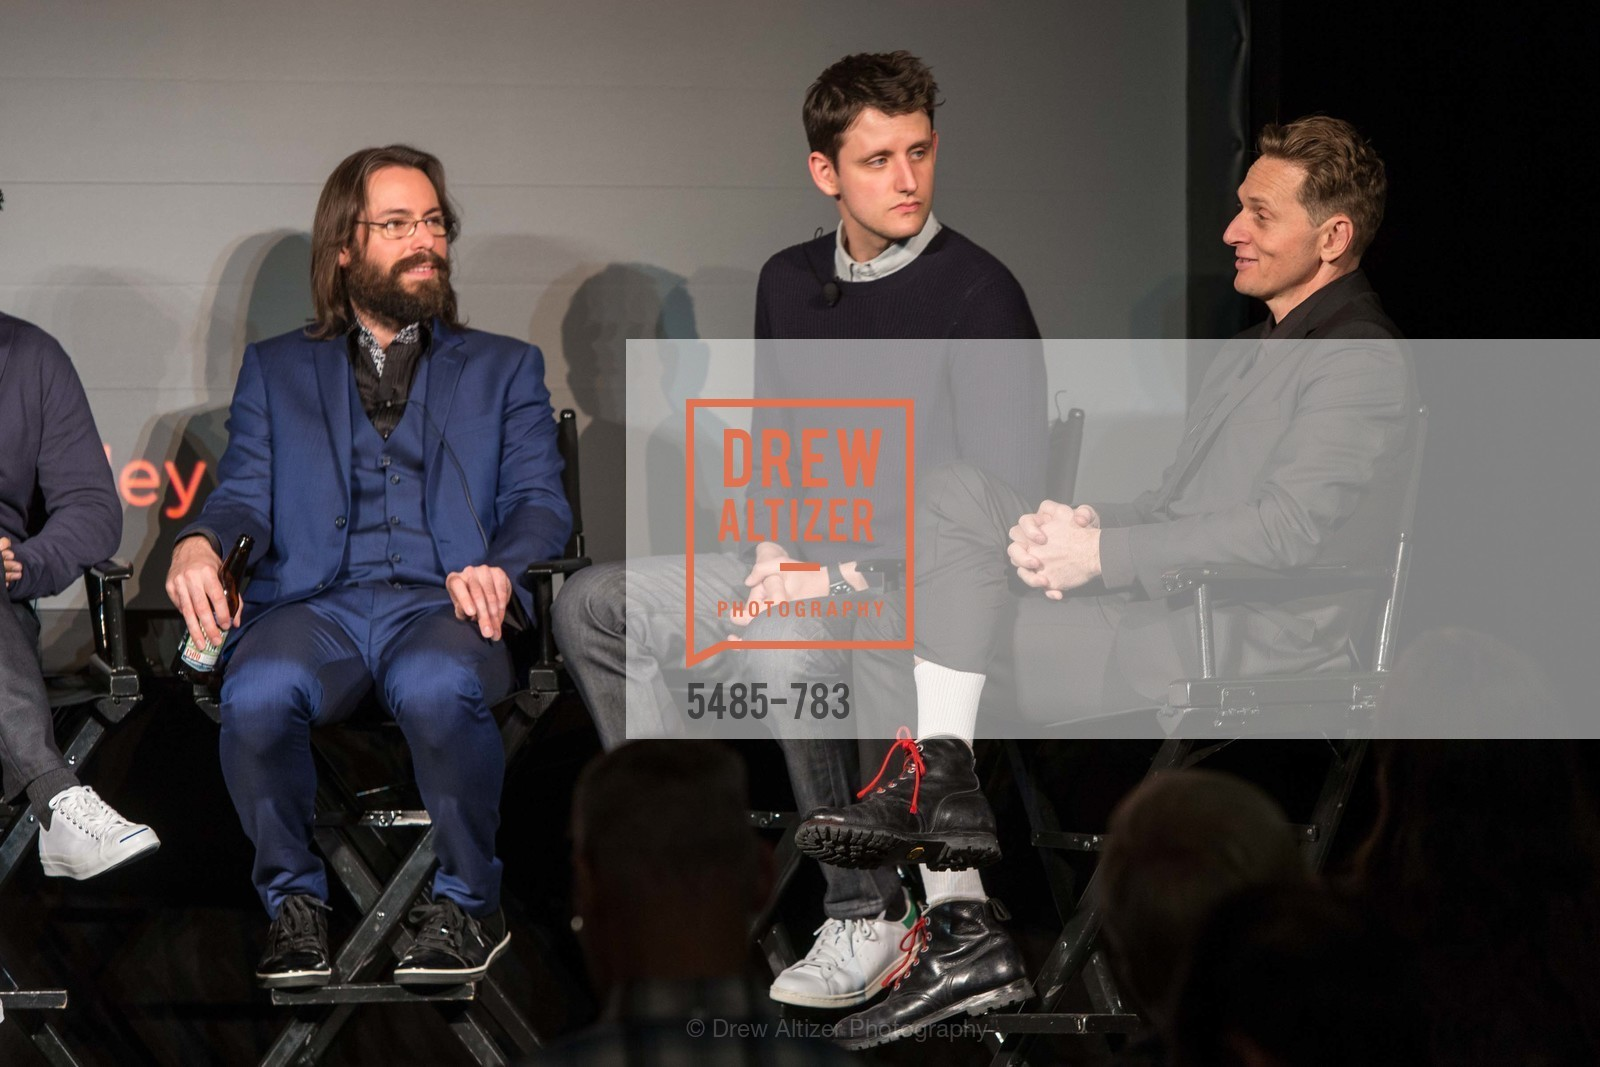 Martin Starr, Zach Woods, Matt Ross, HBO'S SILICON VALLEY San Francisco Screening, US, April 9th, 2015,Drew Altizer, Drew Altizer Photography, full-service agency, private events, San Francisco photographer, photographer california